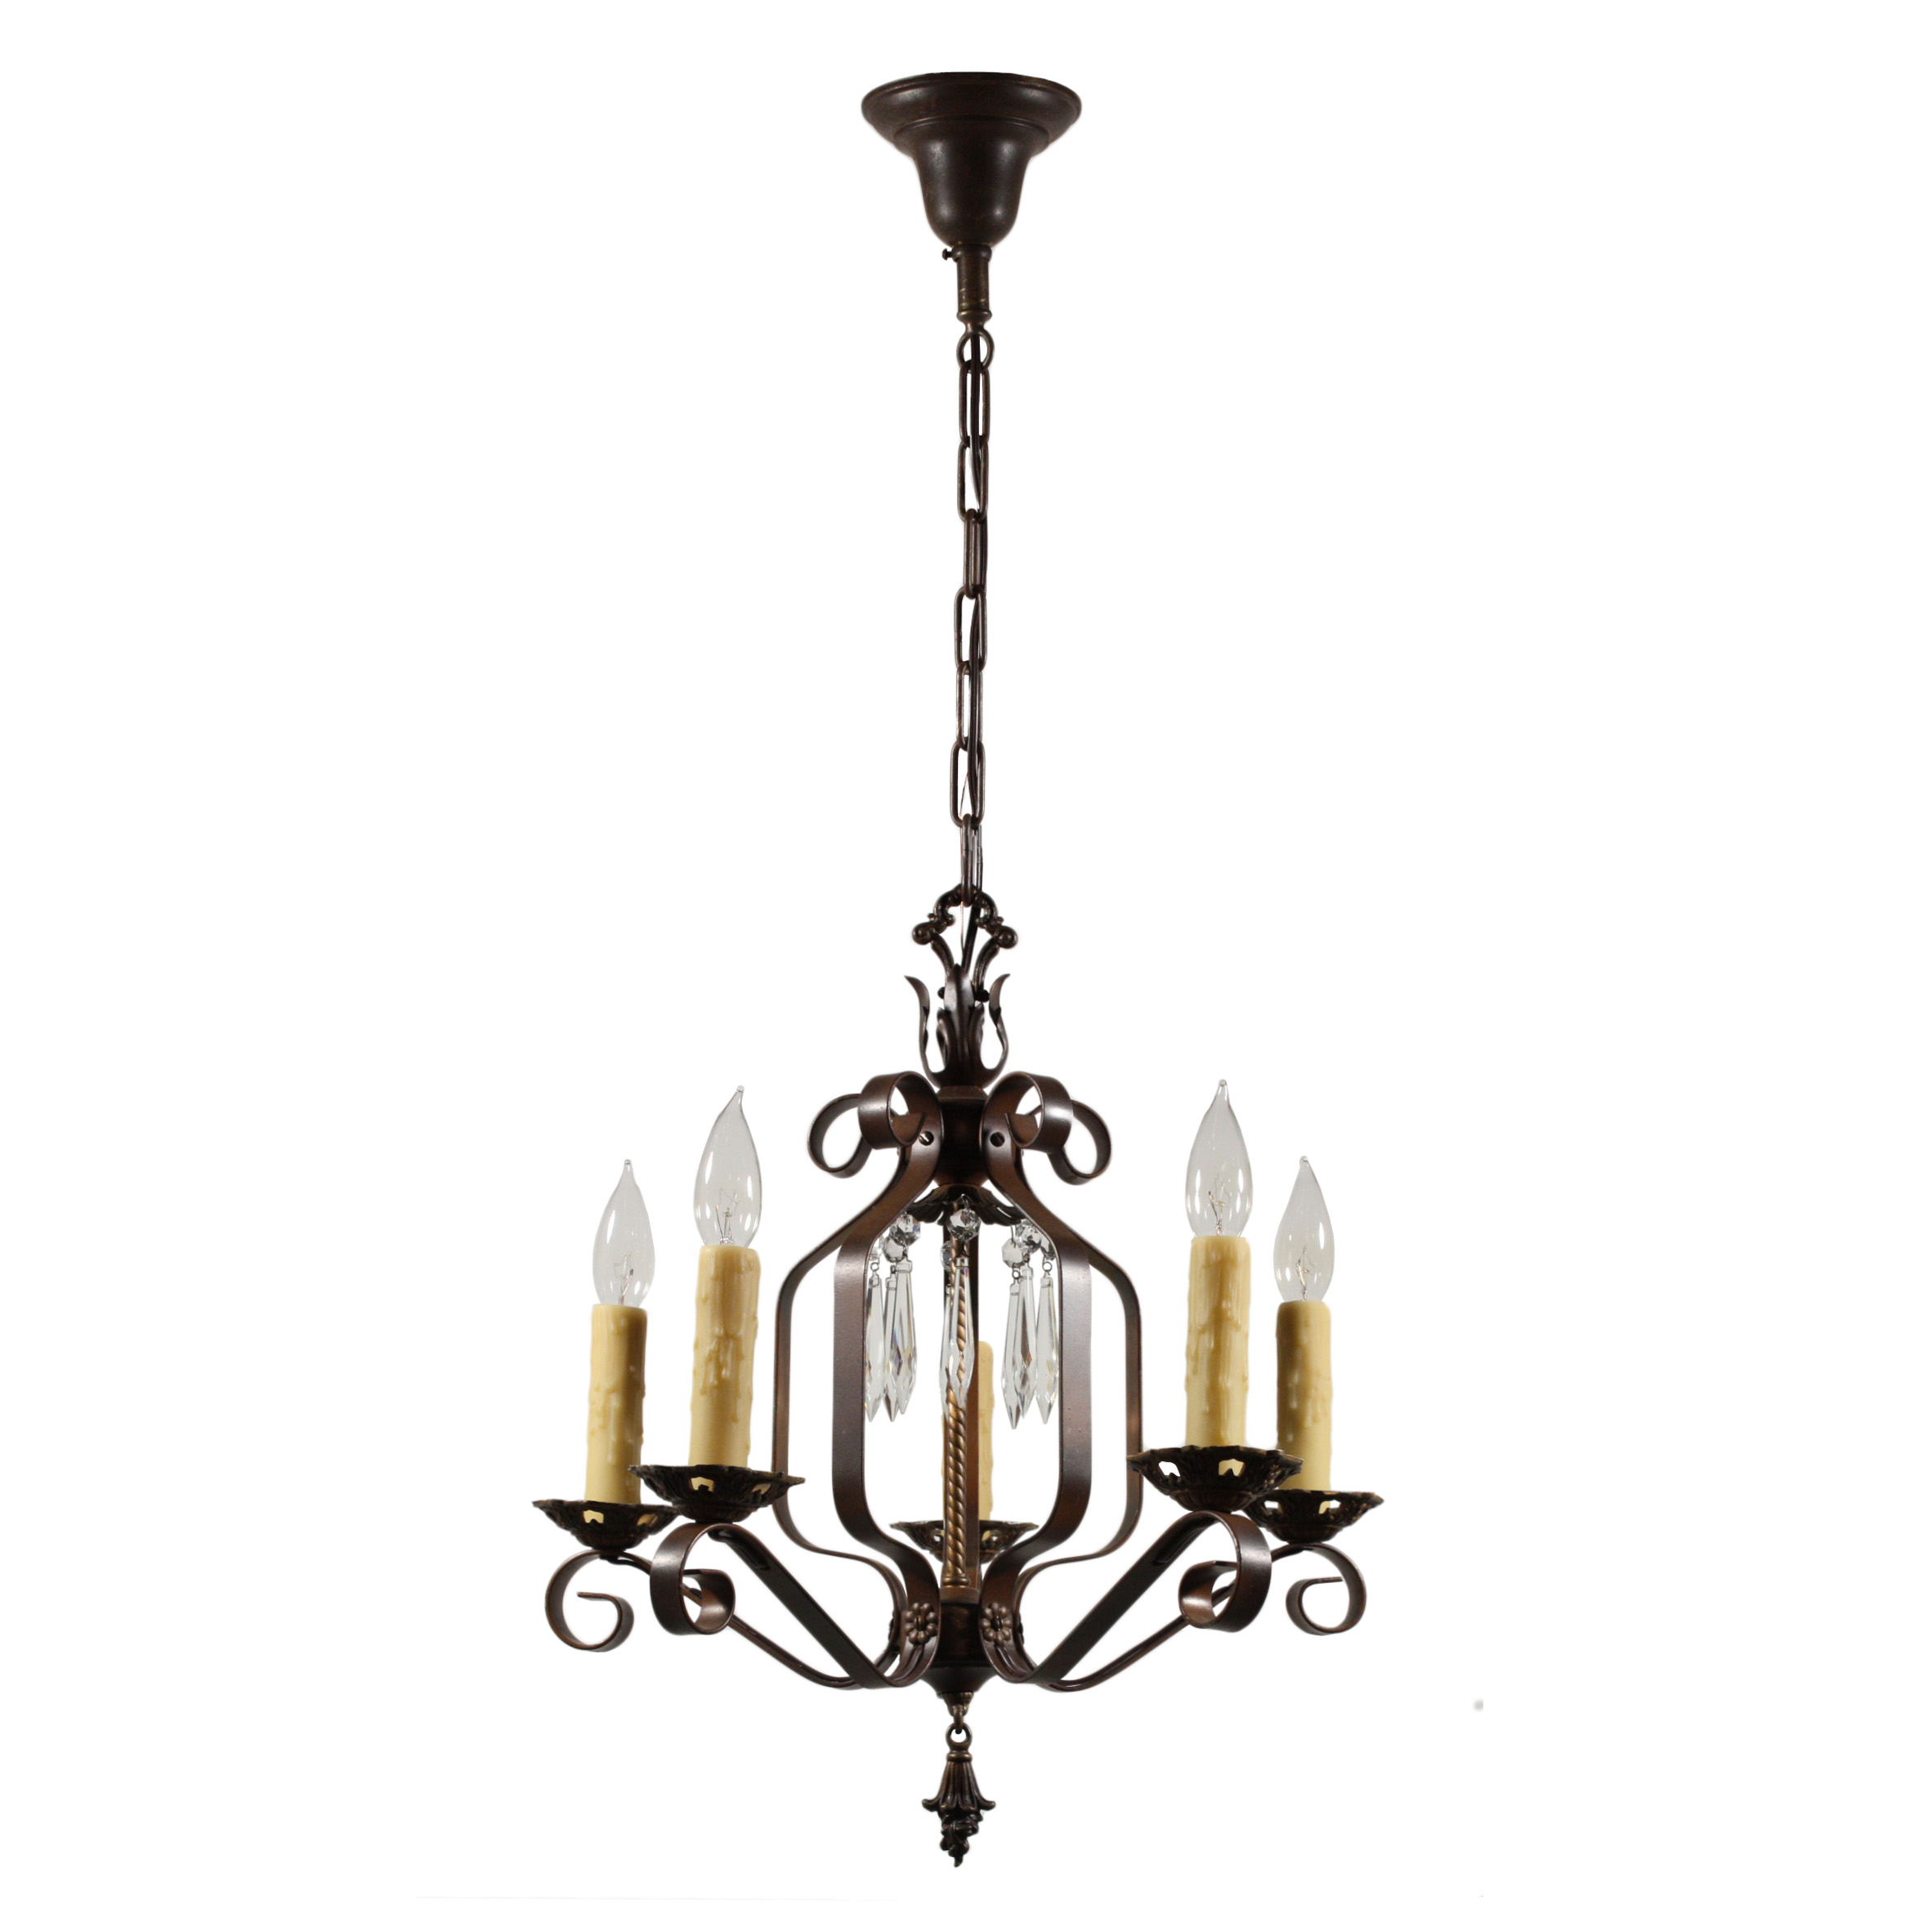 Wrought Iron Rectangular Chandelier Marvelous Antique Five Light Wrought Iron Chandelier With